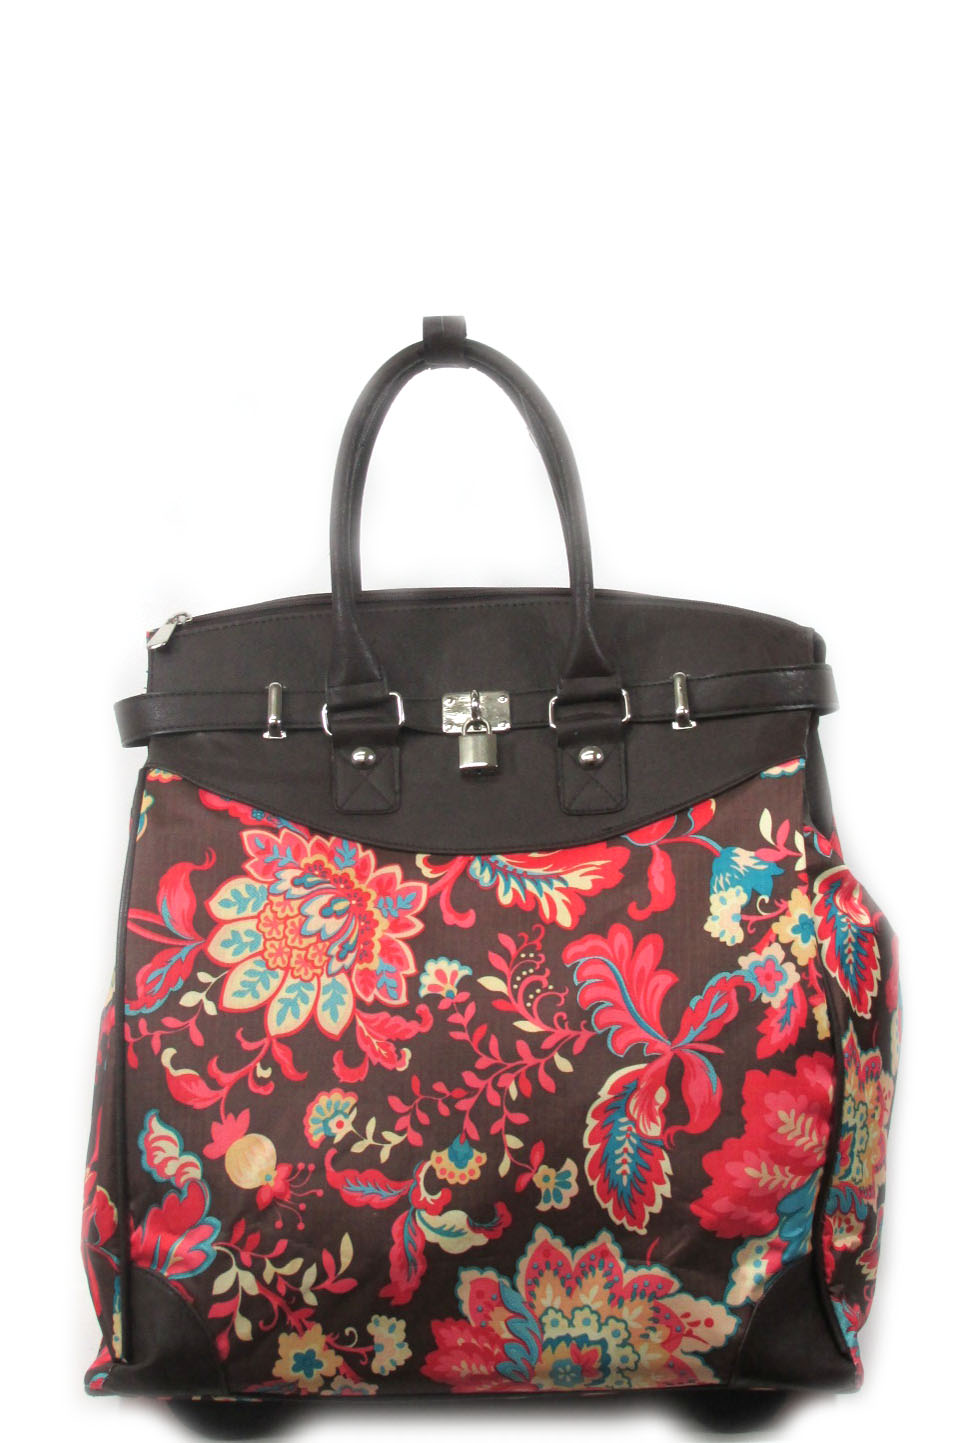 Garden bouquet print luggage - orangeshine.com